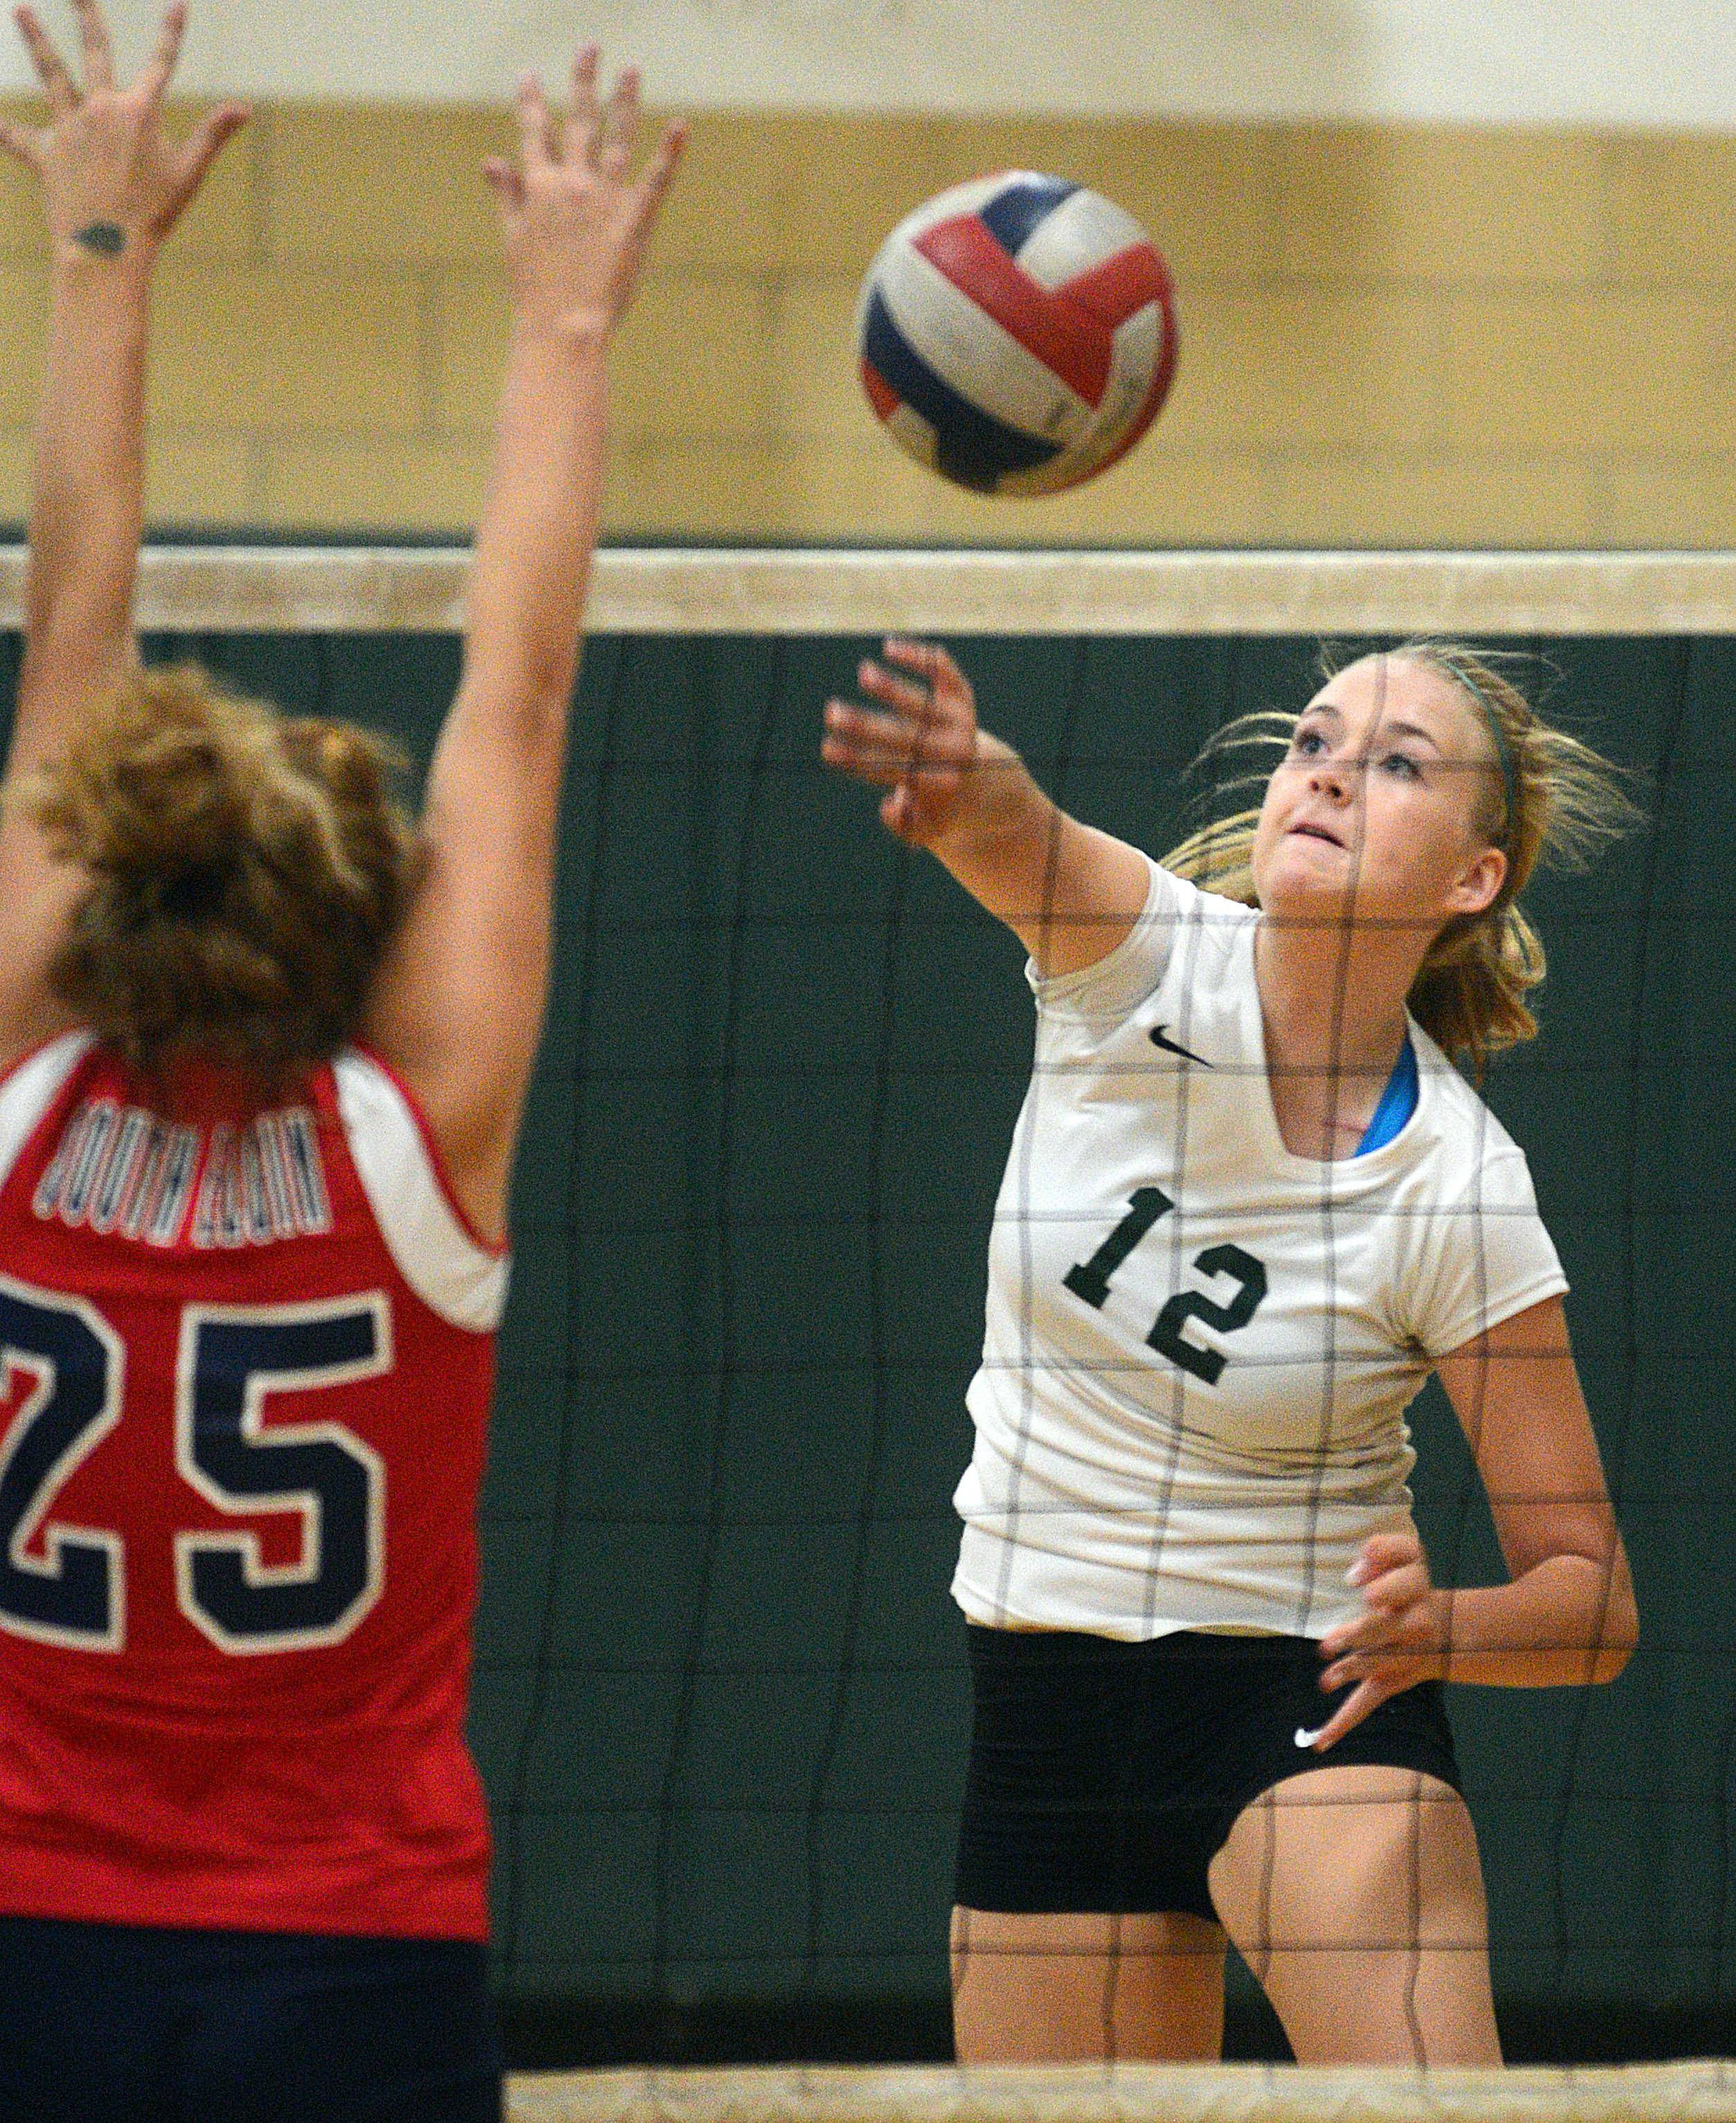 St. Edward's Cecile Rapp, right, hits the ball past South Elgin's Renee Rush during volleyball action at St. Edward on Wednesday evening.